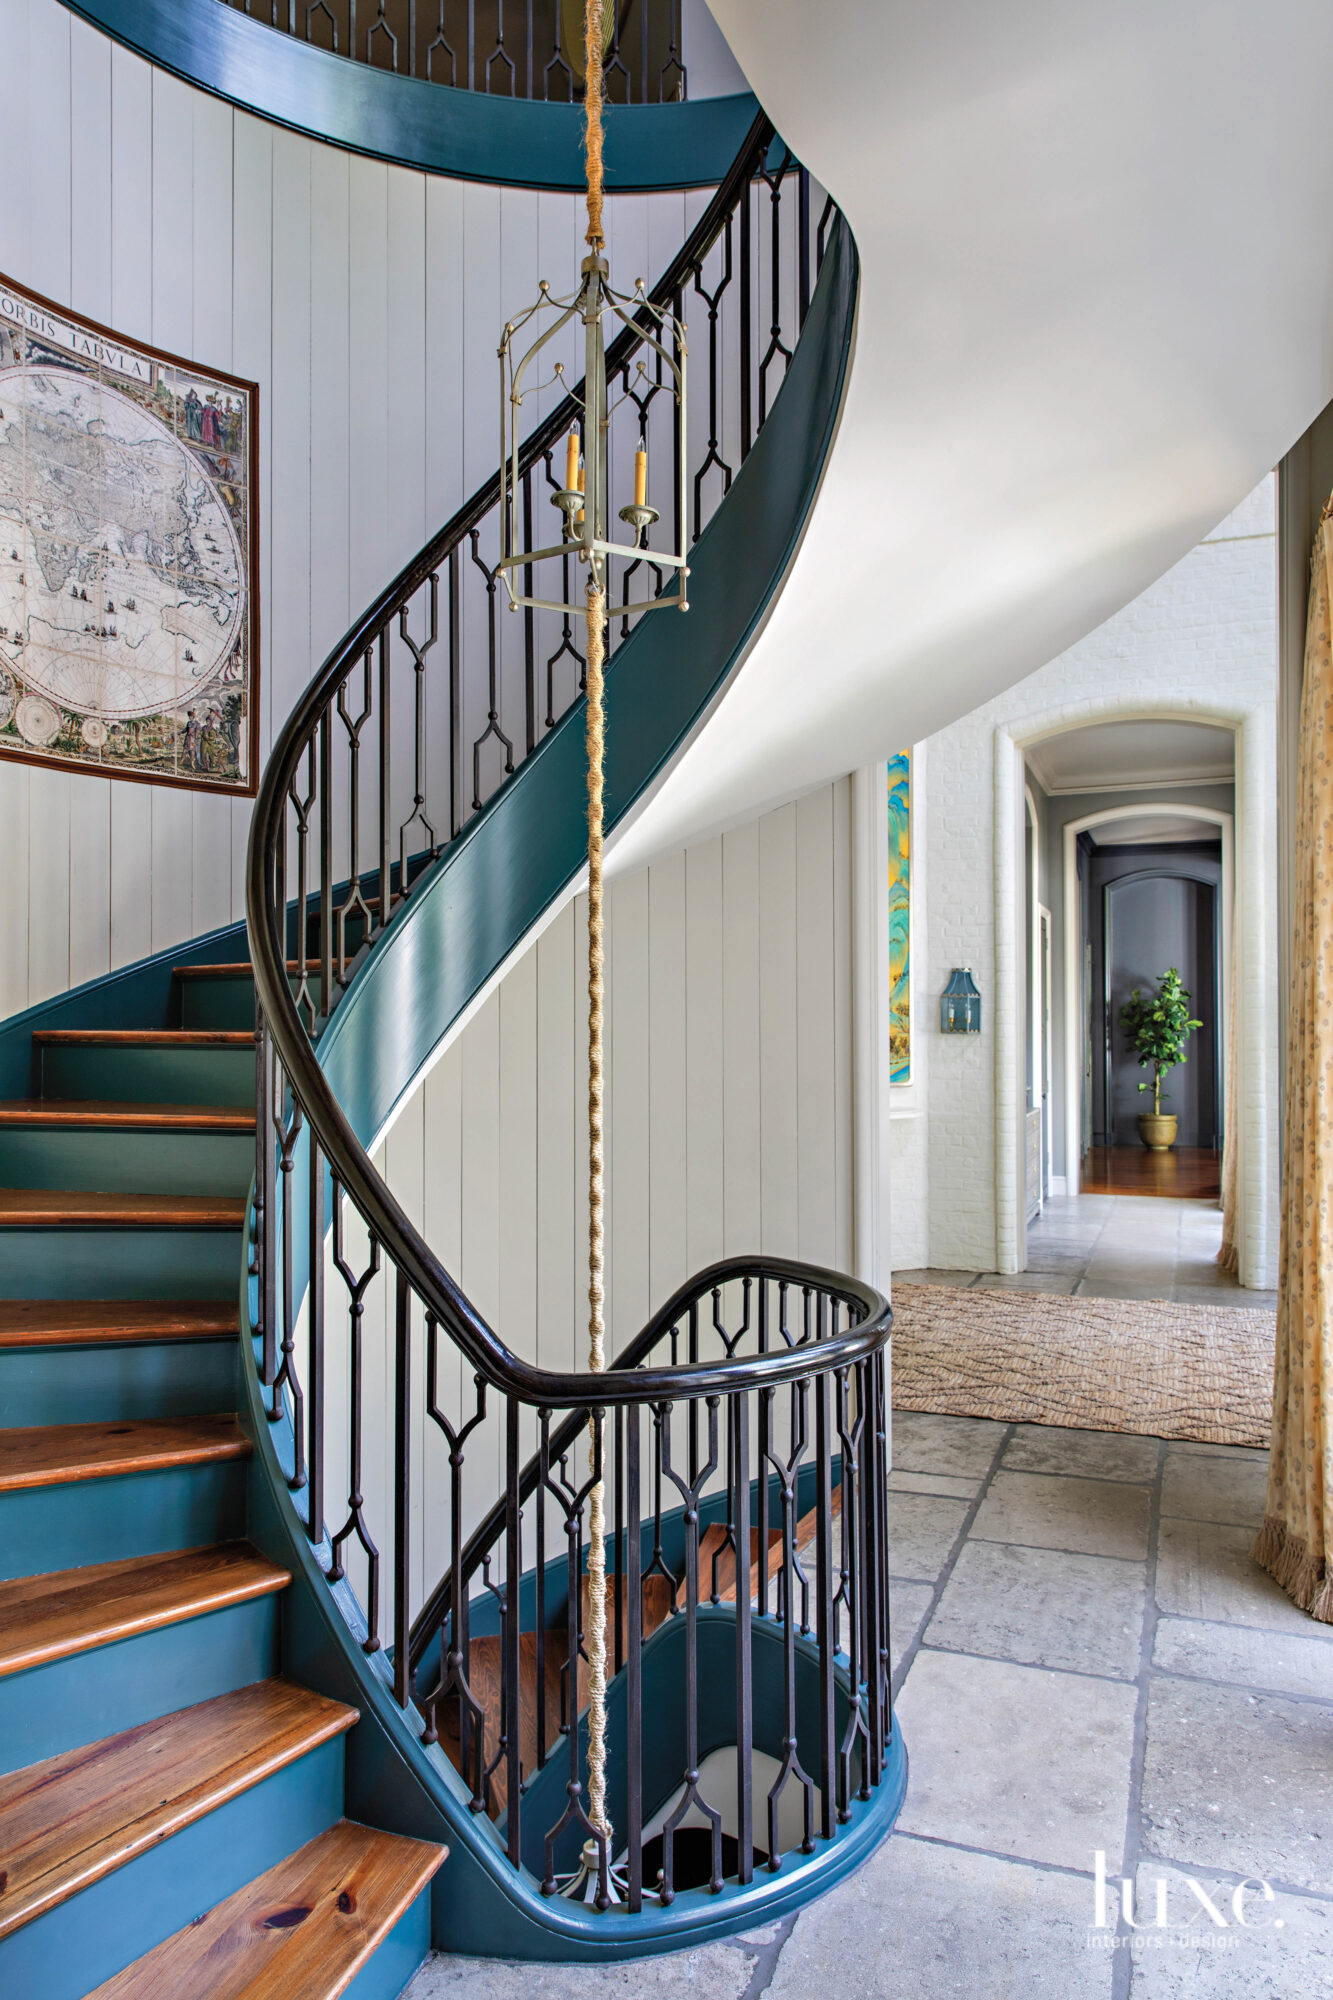 Spiral staircase with teal trim...